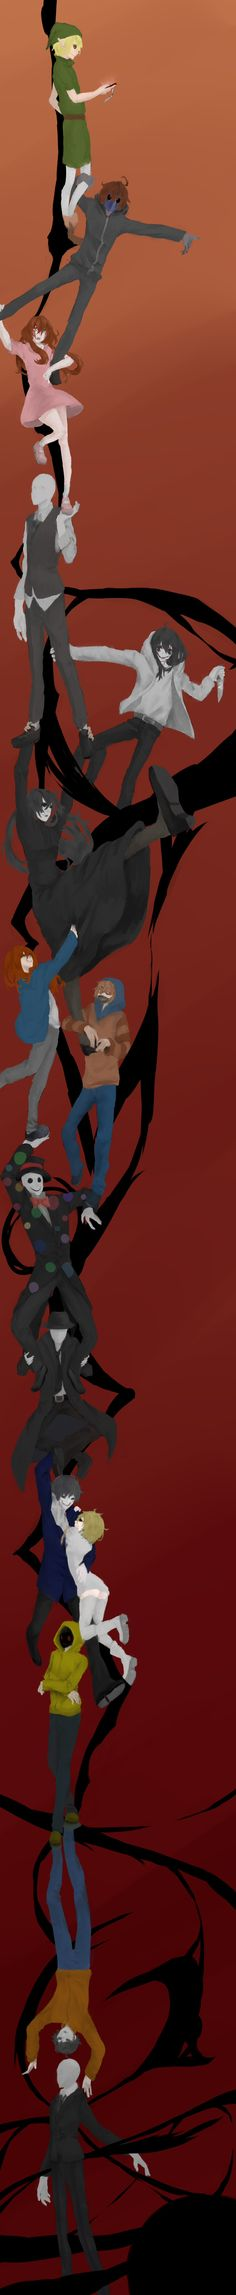 Durarara x Creepypasta Scary Creepypasta, Creepypasta Proxy, Creepy Stories, Horror Stories, Creepy Pasta Family, Eyeless Jack, Ben Drowned, Jeff The Killer, Durarara